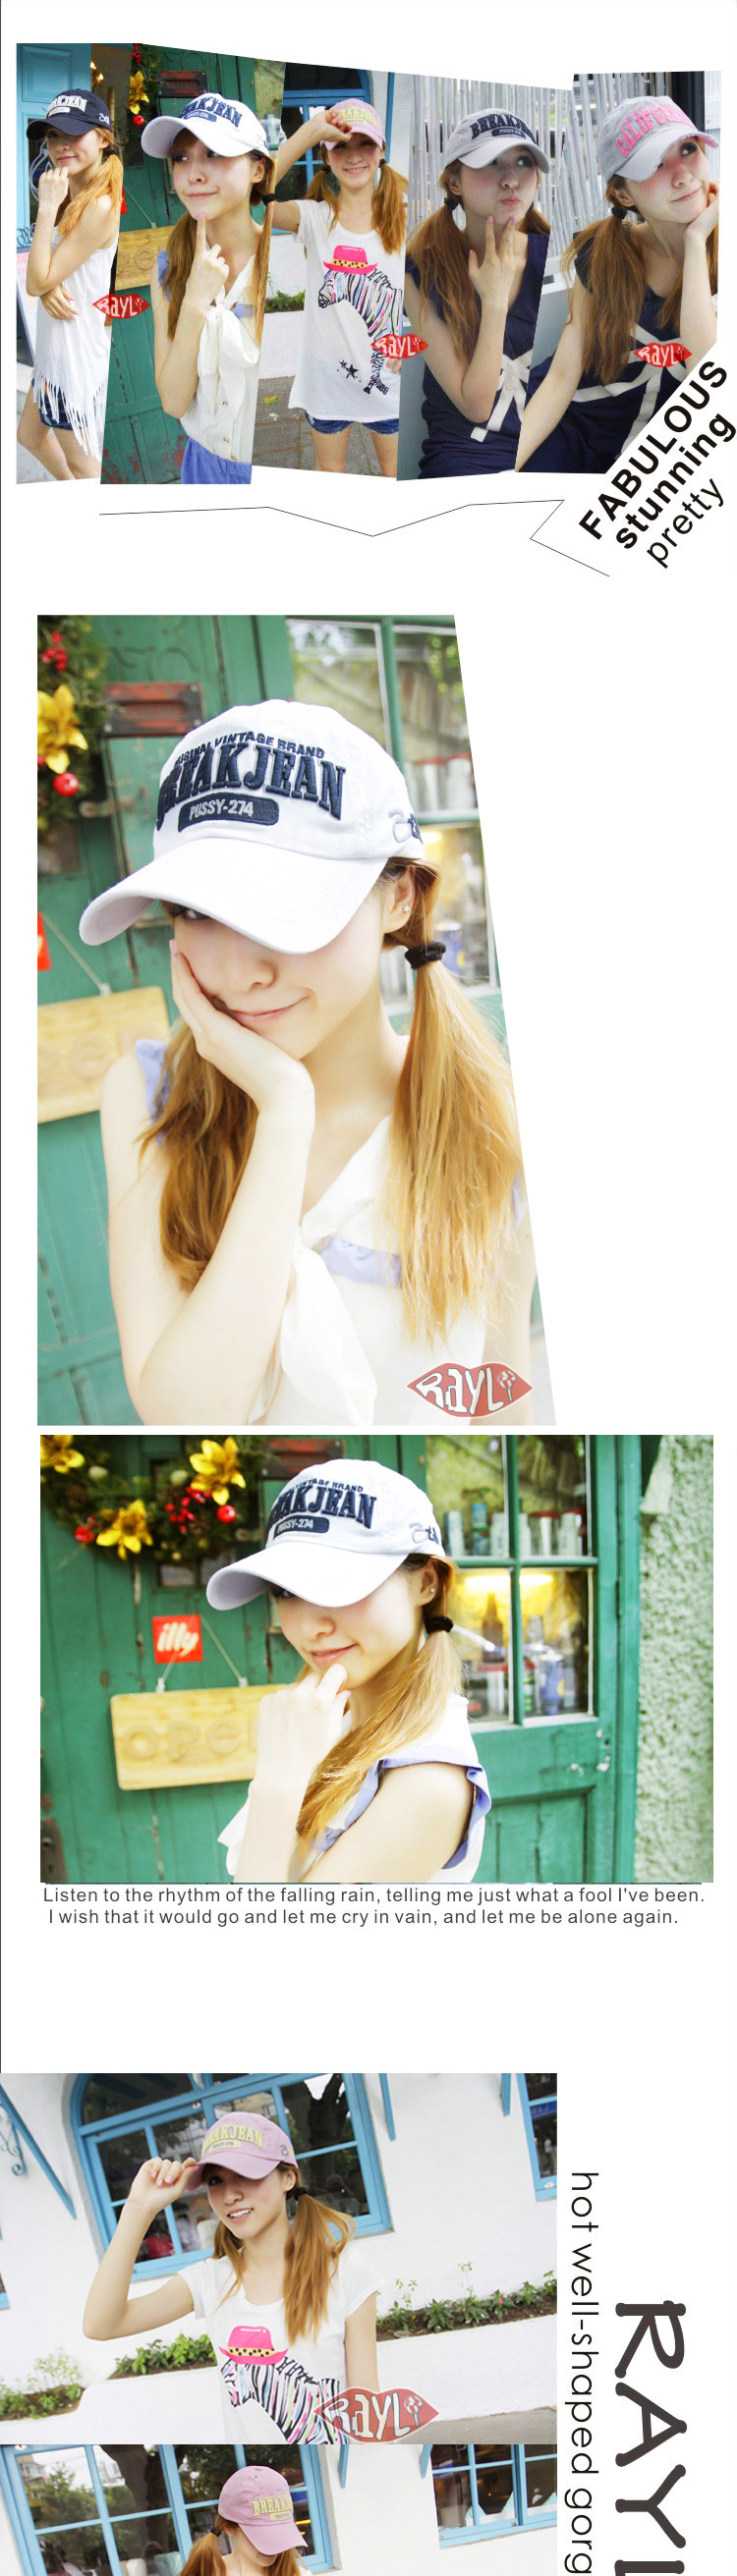 Rayli RAYLI summer of Korean men and women BREAK Cap Baseball Cap Hat fashionable genuine temperament K1017